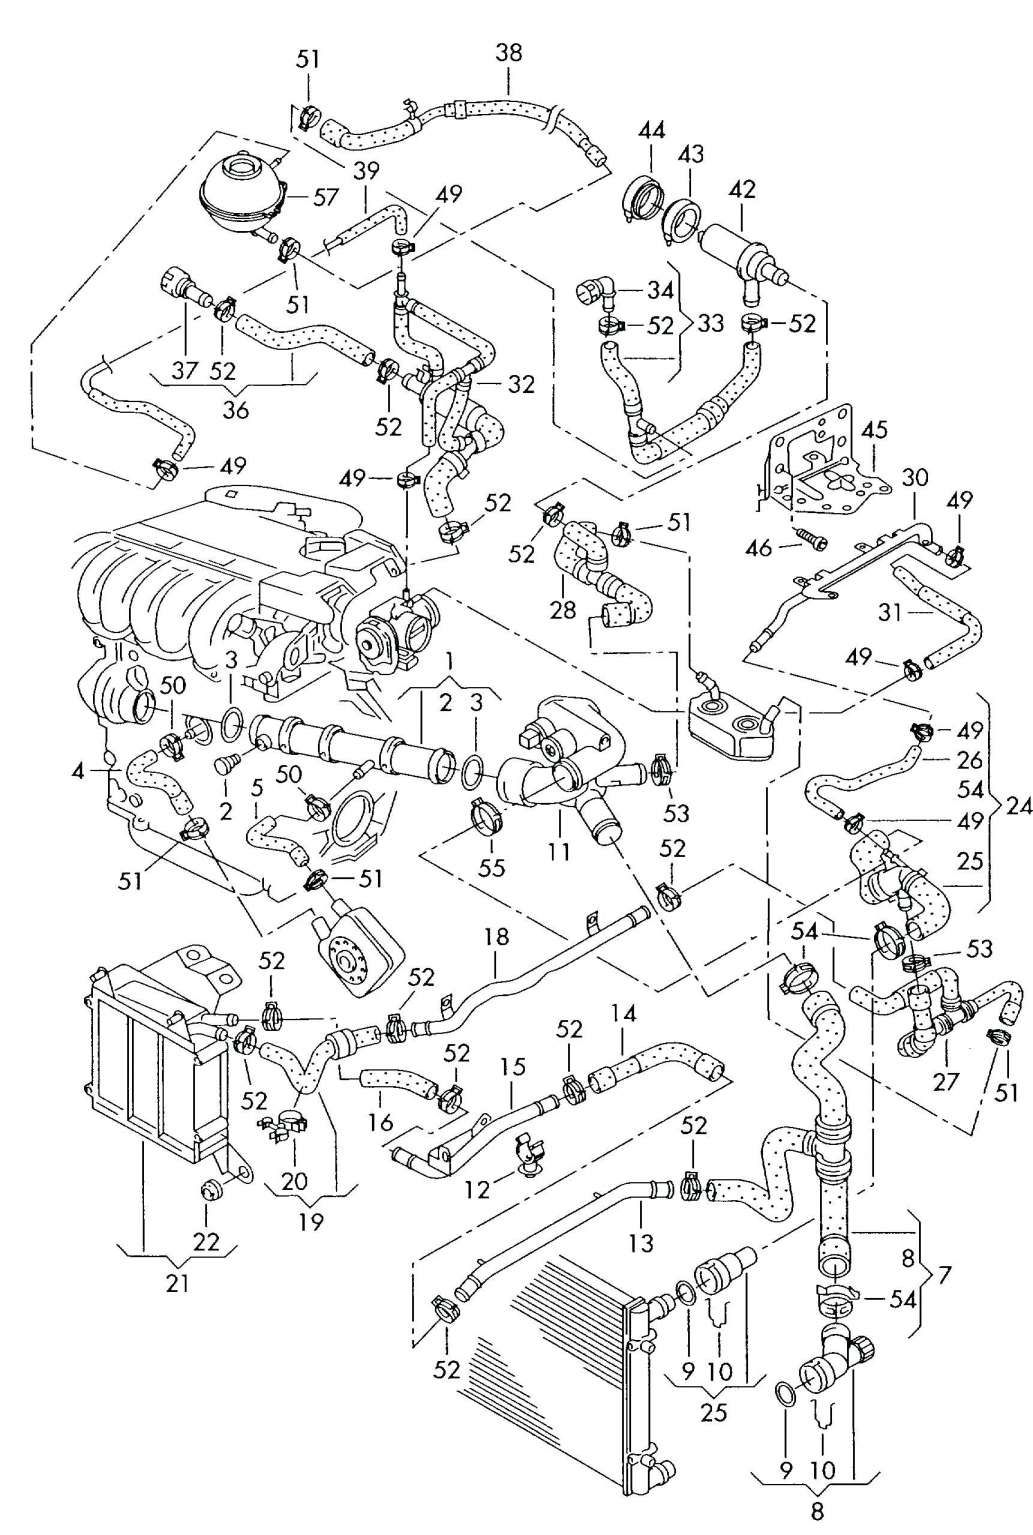 audi a3 engine wiring diagram and gti fsi engine diagram - getting started  of wiring diagram | vw up, vr6 engine, vw jetta  pinterest